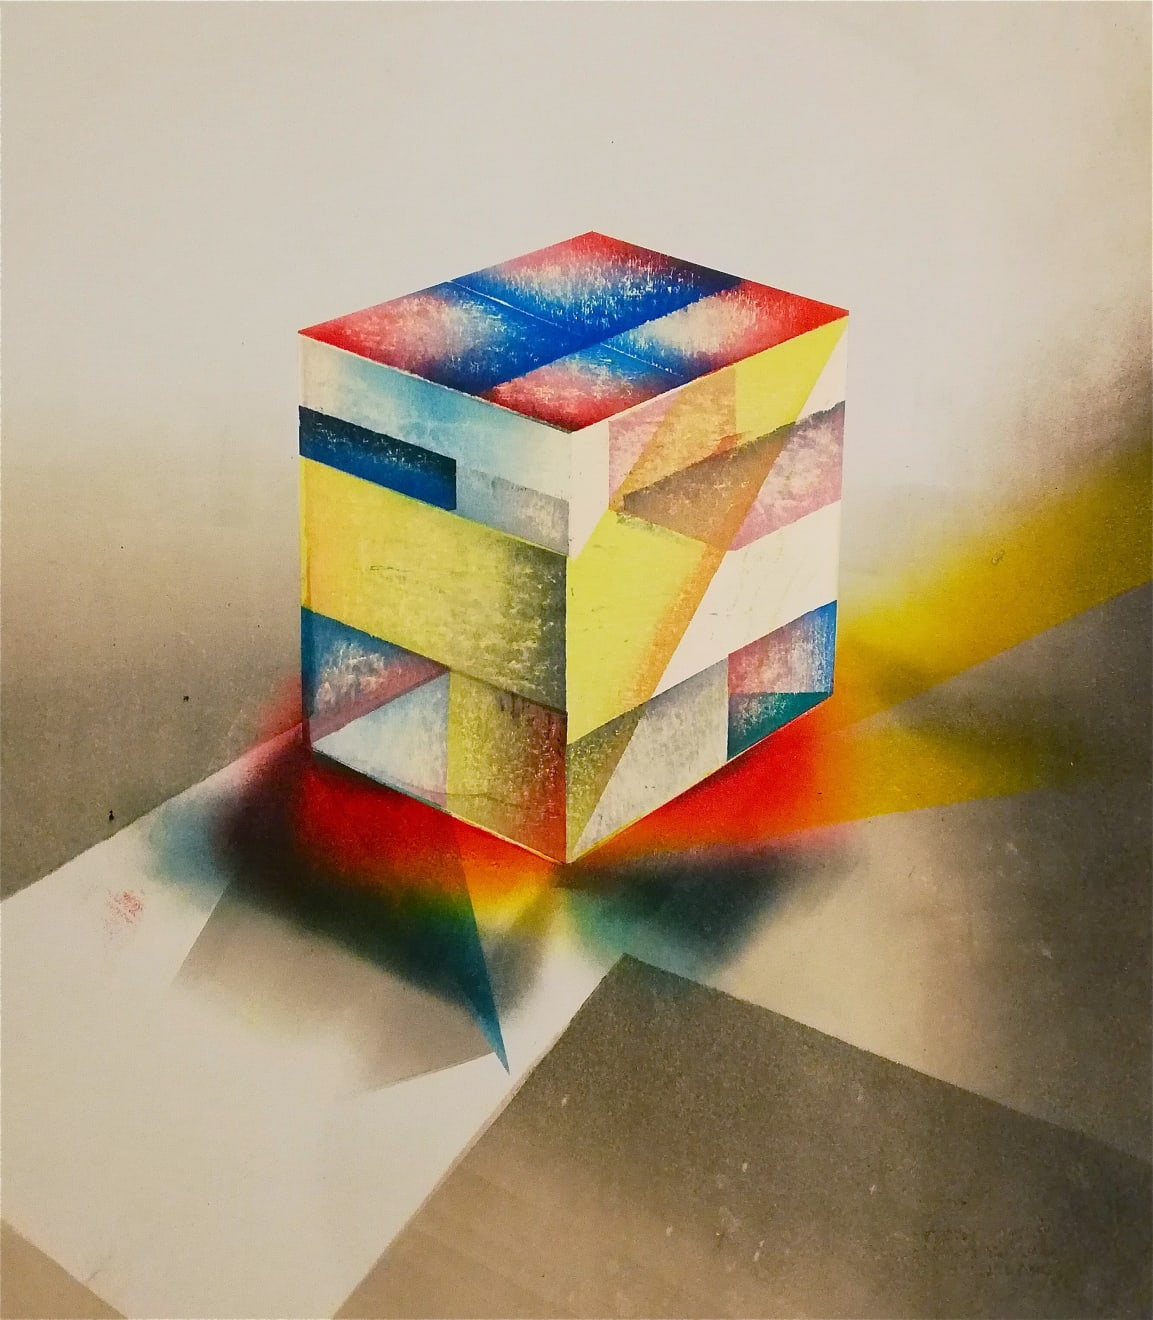 Sophie Layton, Refracting Light IV, 2018